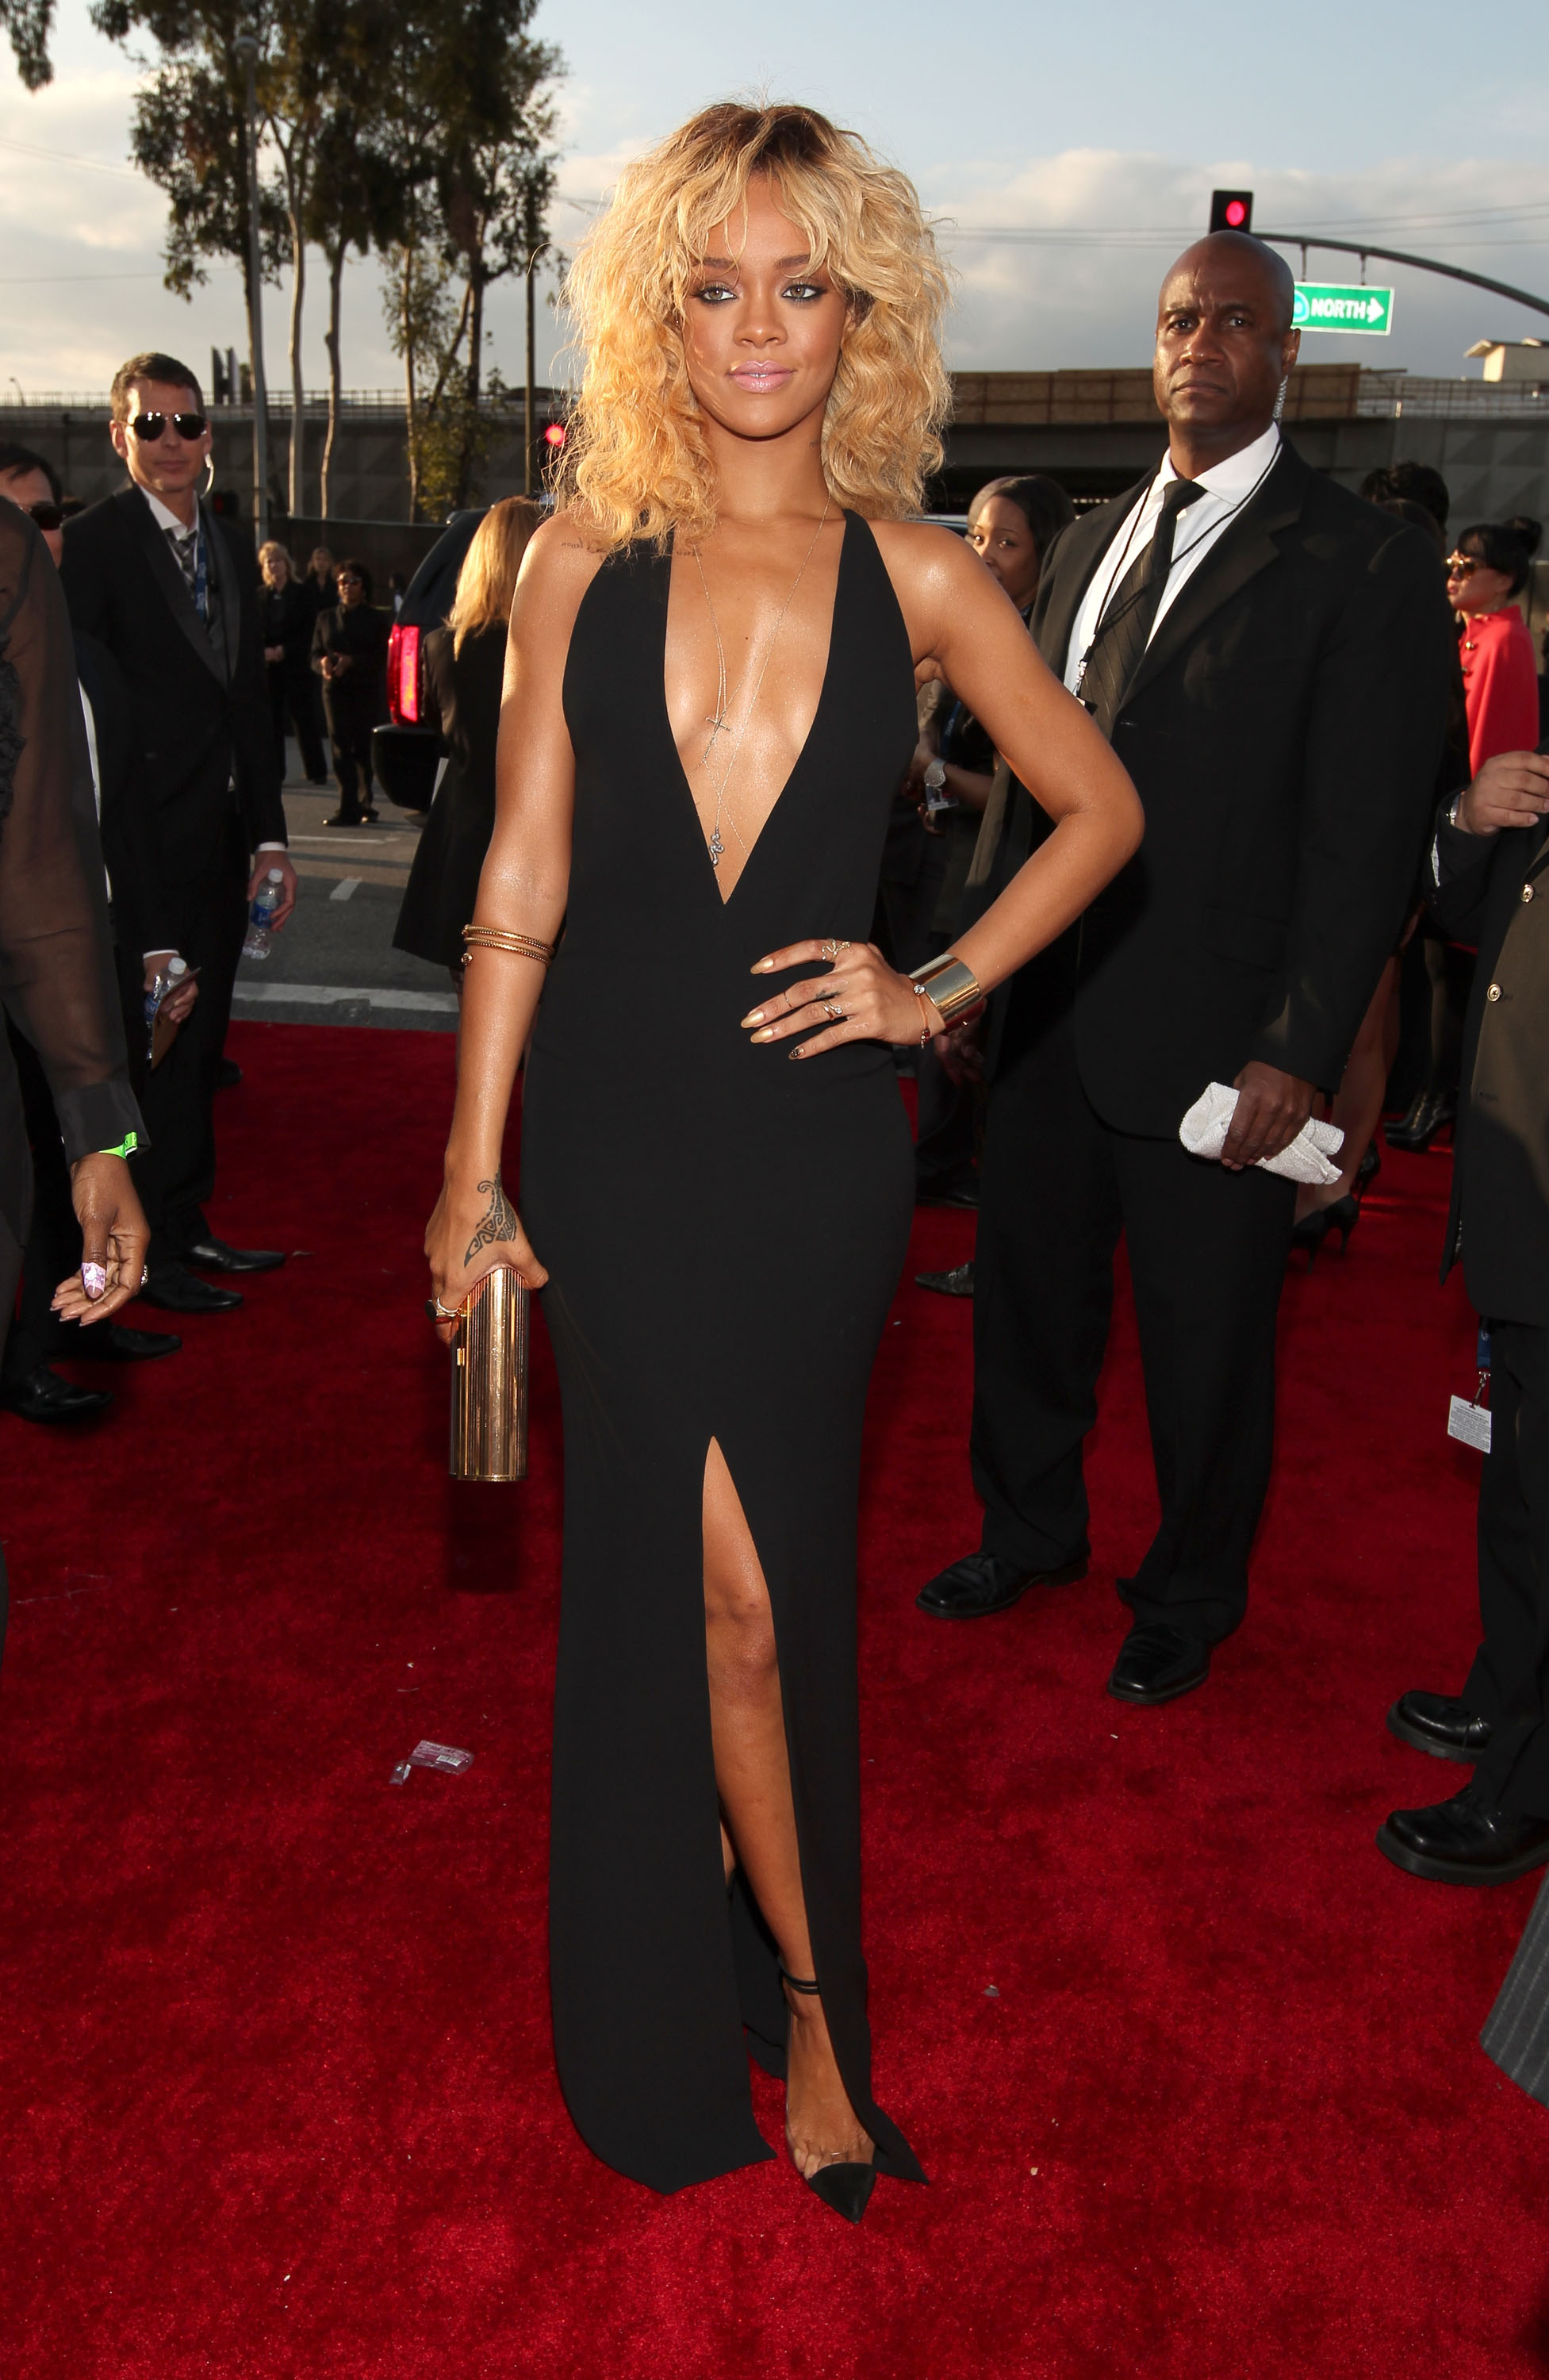 Rihanna in a black Armani gown at the Grammys.